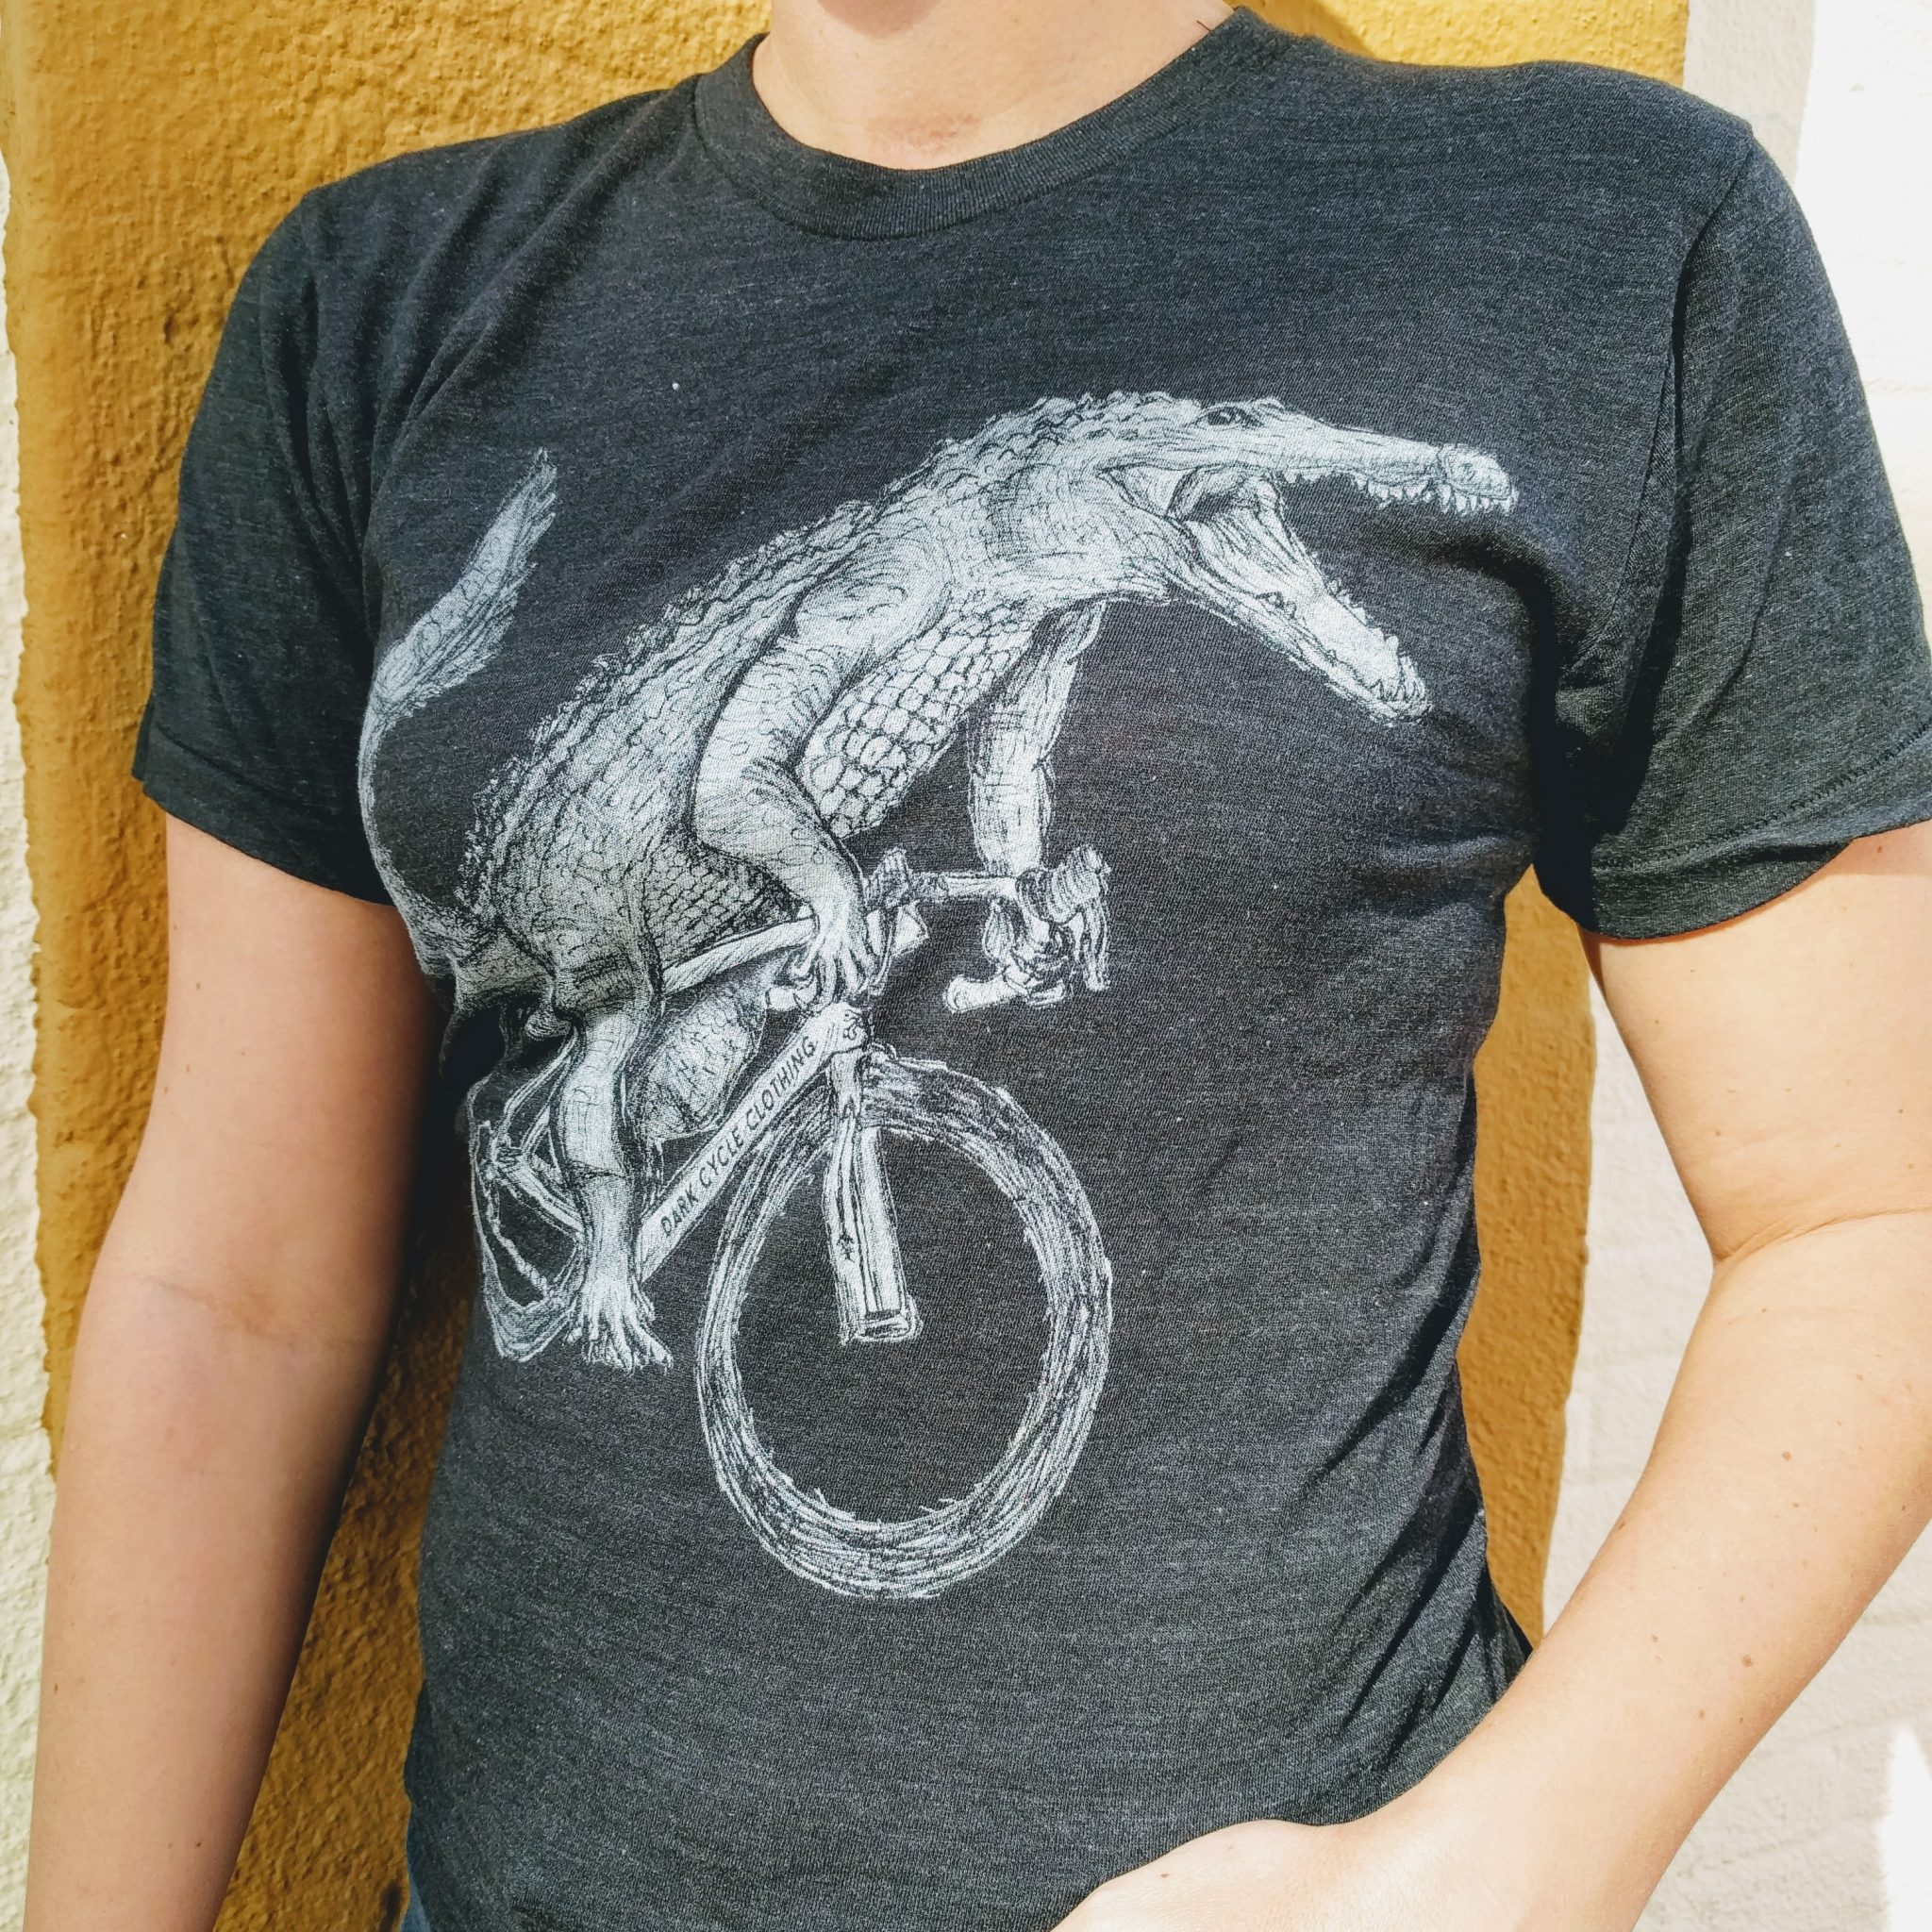 Gator on a Bicycle Dark Cycle Clothing